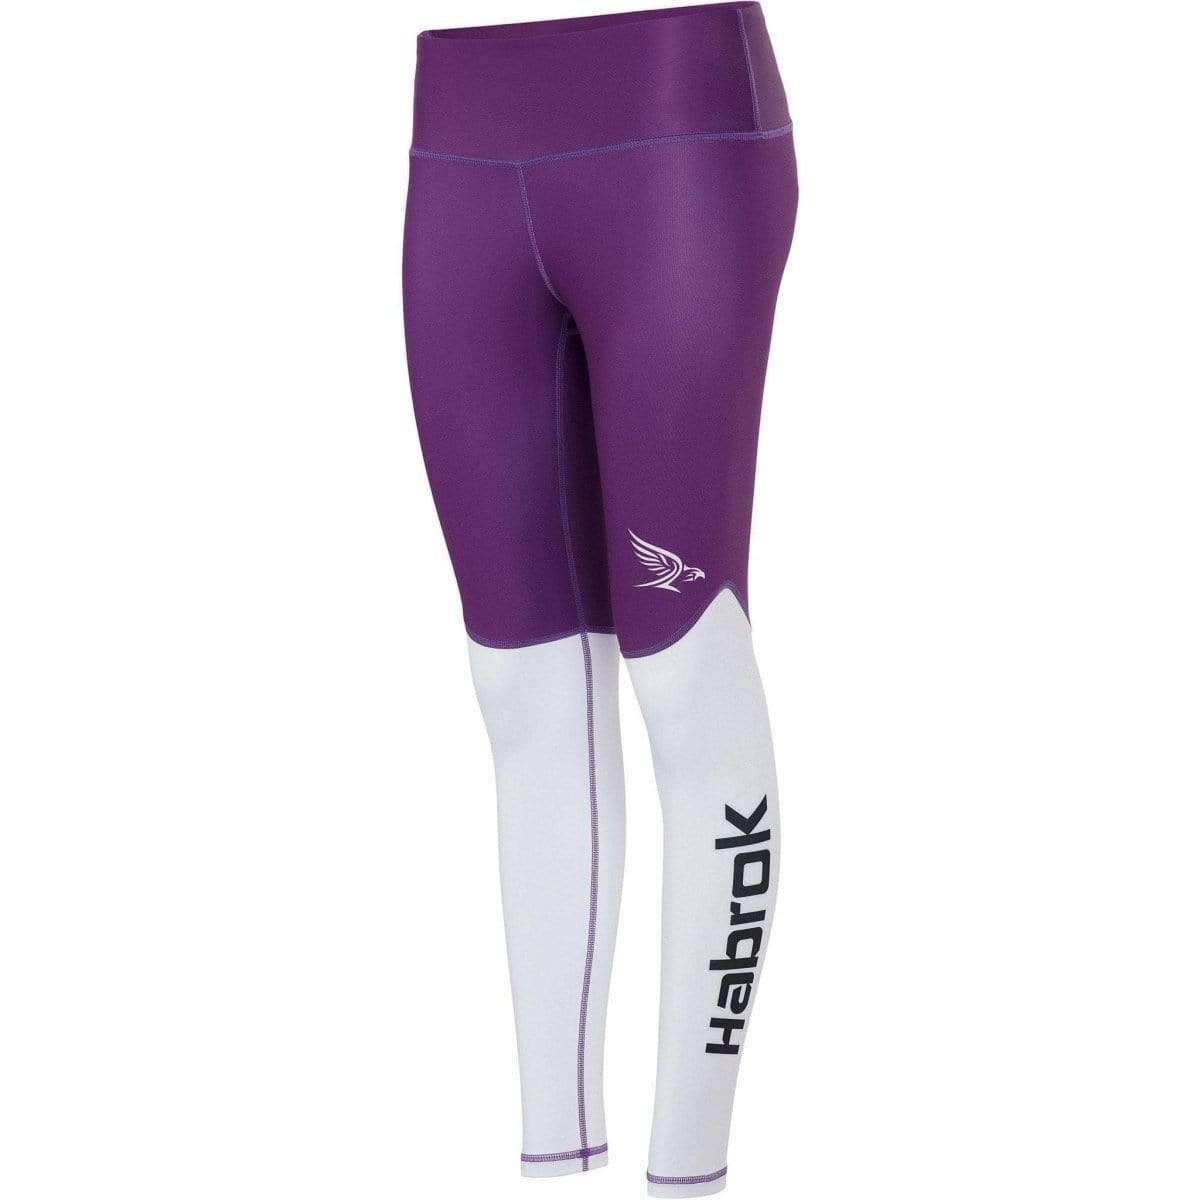 Habrok Spats XS / PURPLE Transform 2.5 | Compression Pants | Women